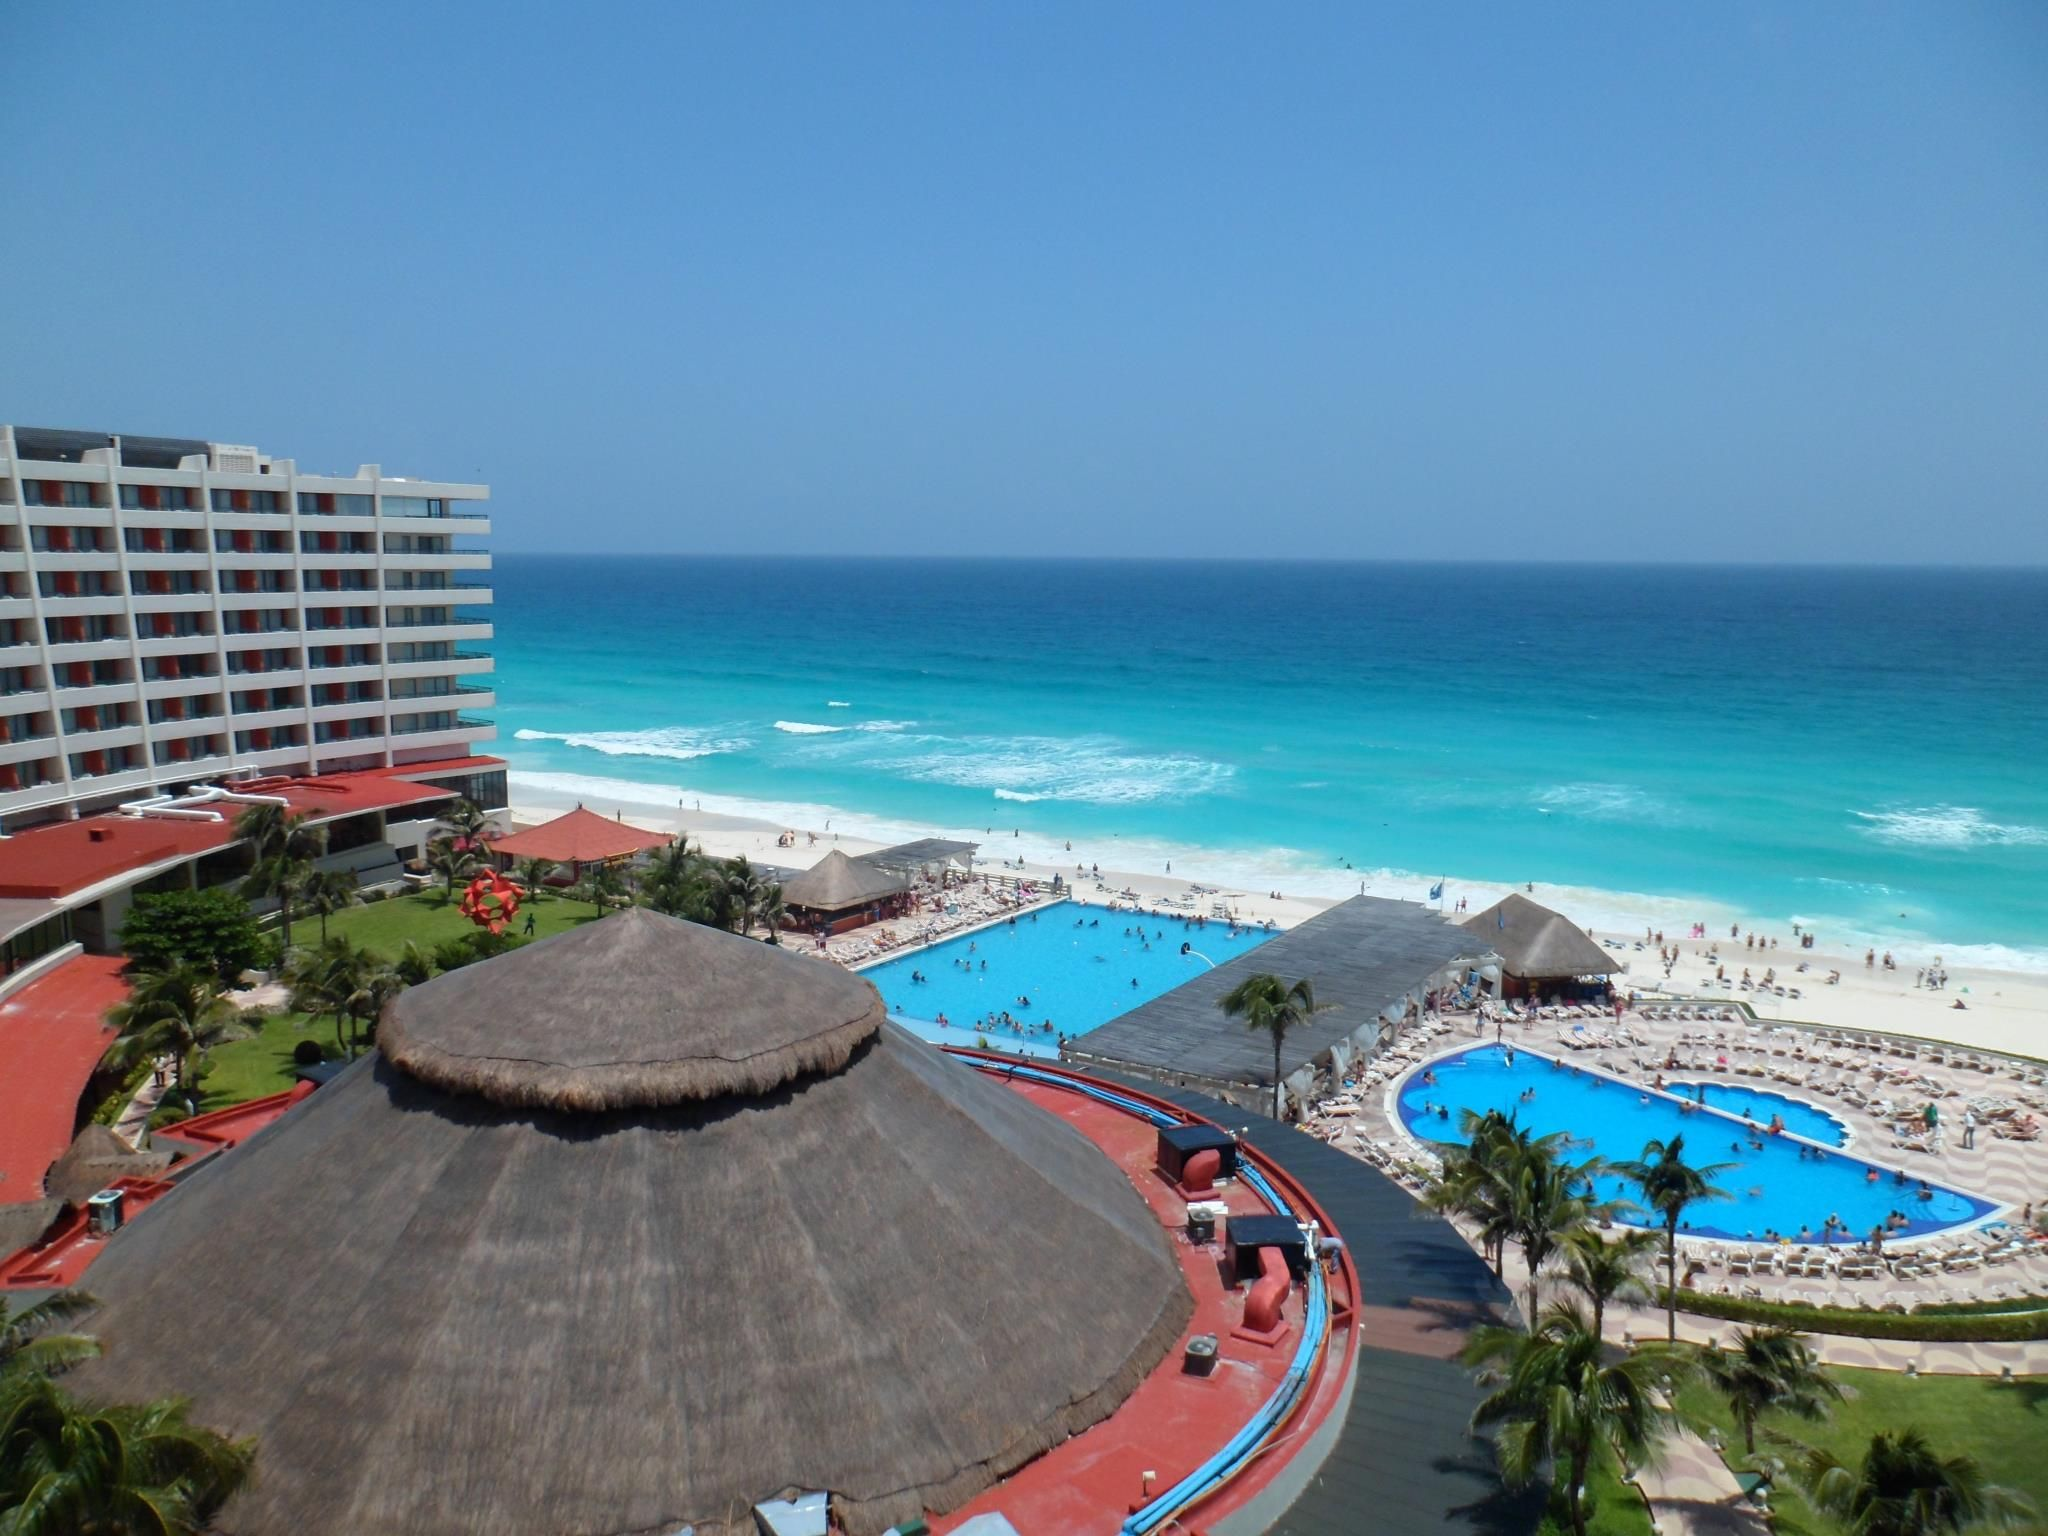 Hotel sandos cancun luxury experience resort marf travel vacation - Crown Paradise Club Cancun All Inclusive Resort Super Saver Kids Free